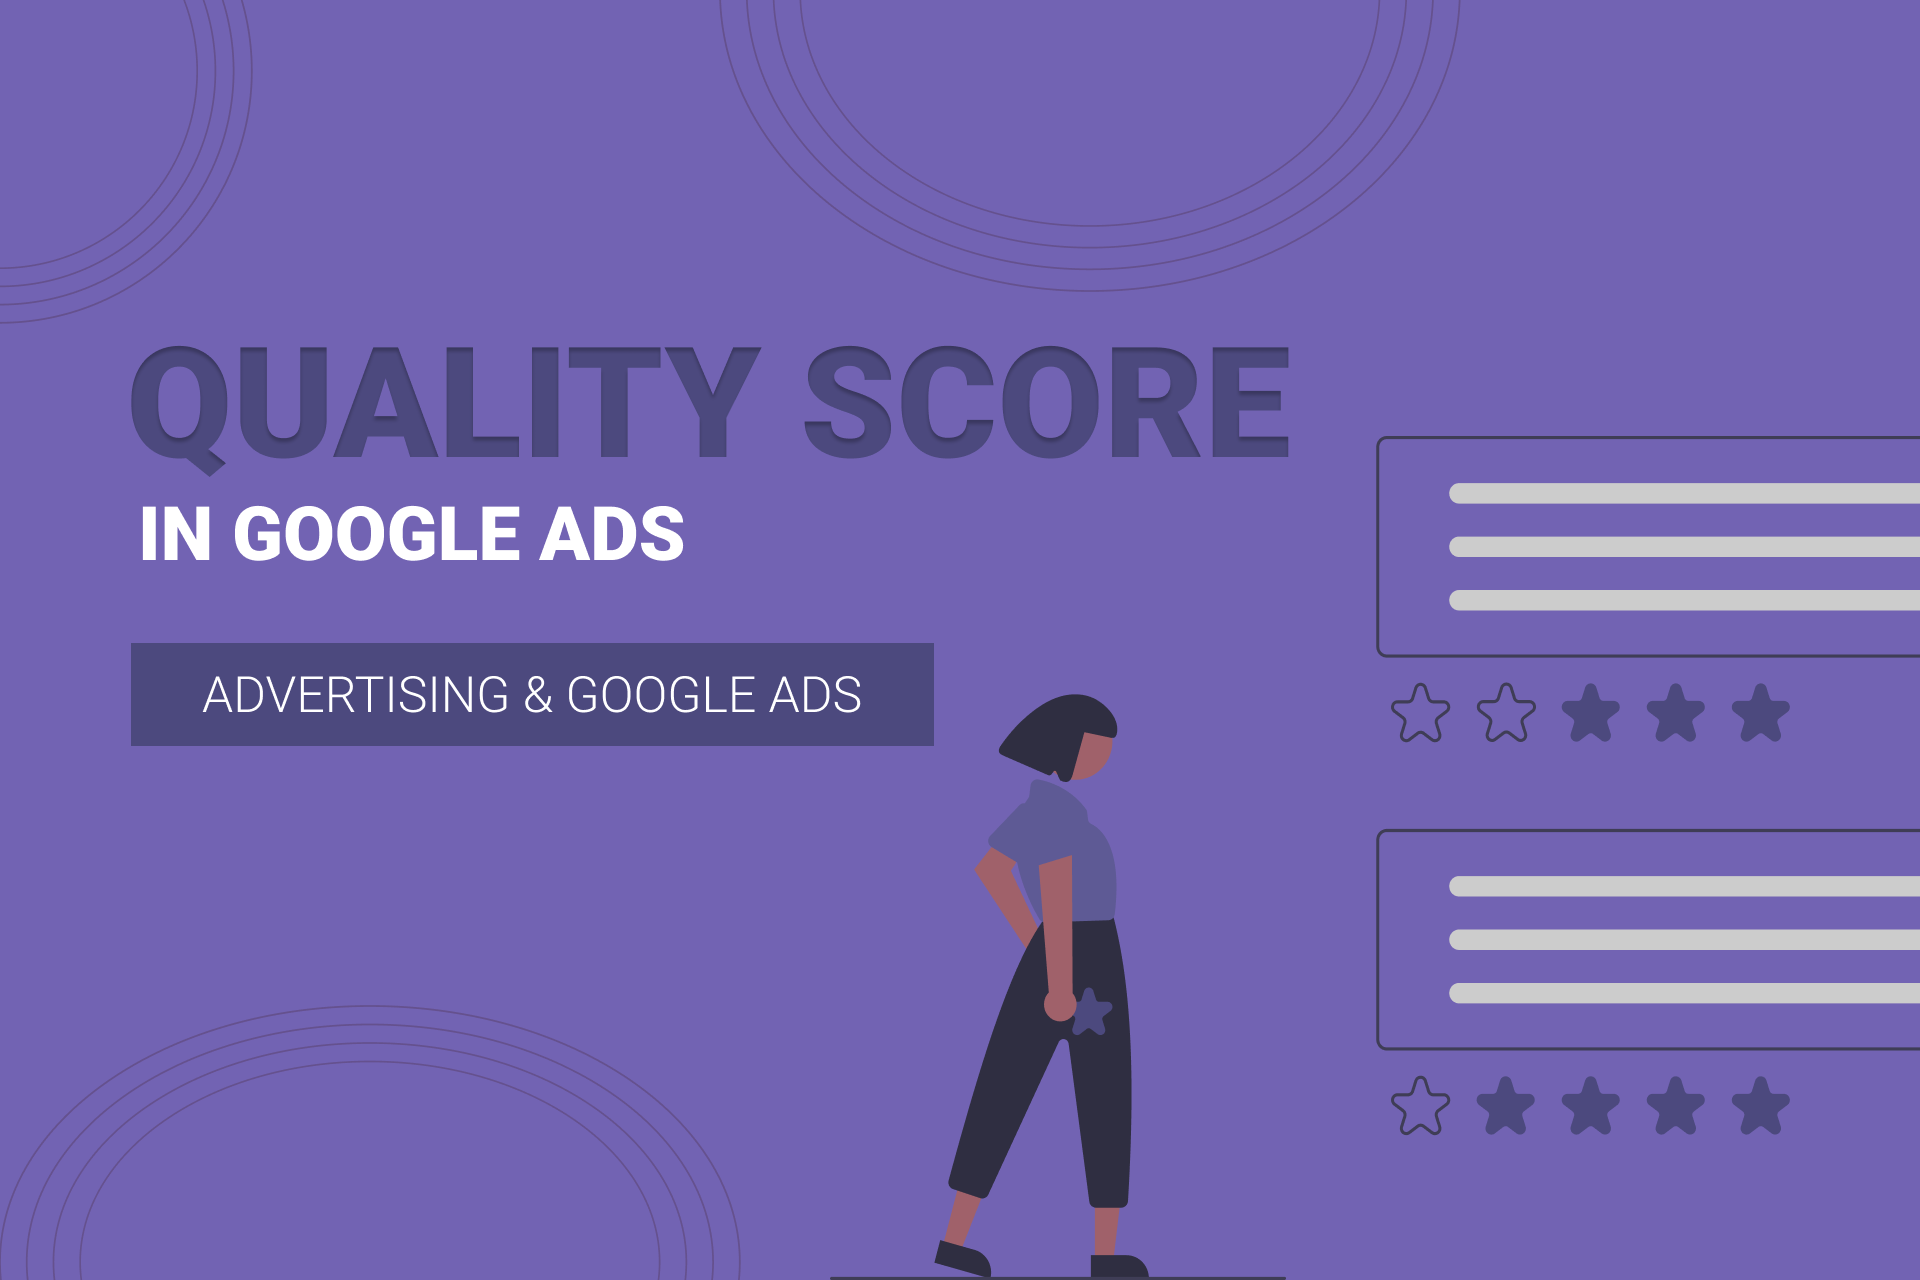 Your Quality Score In Google Ads